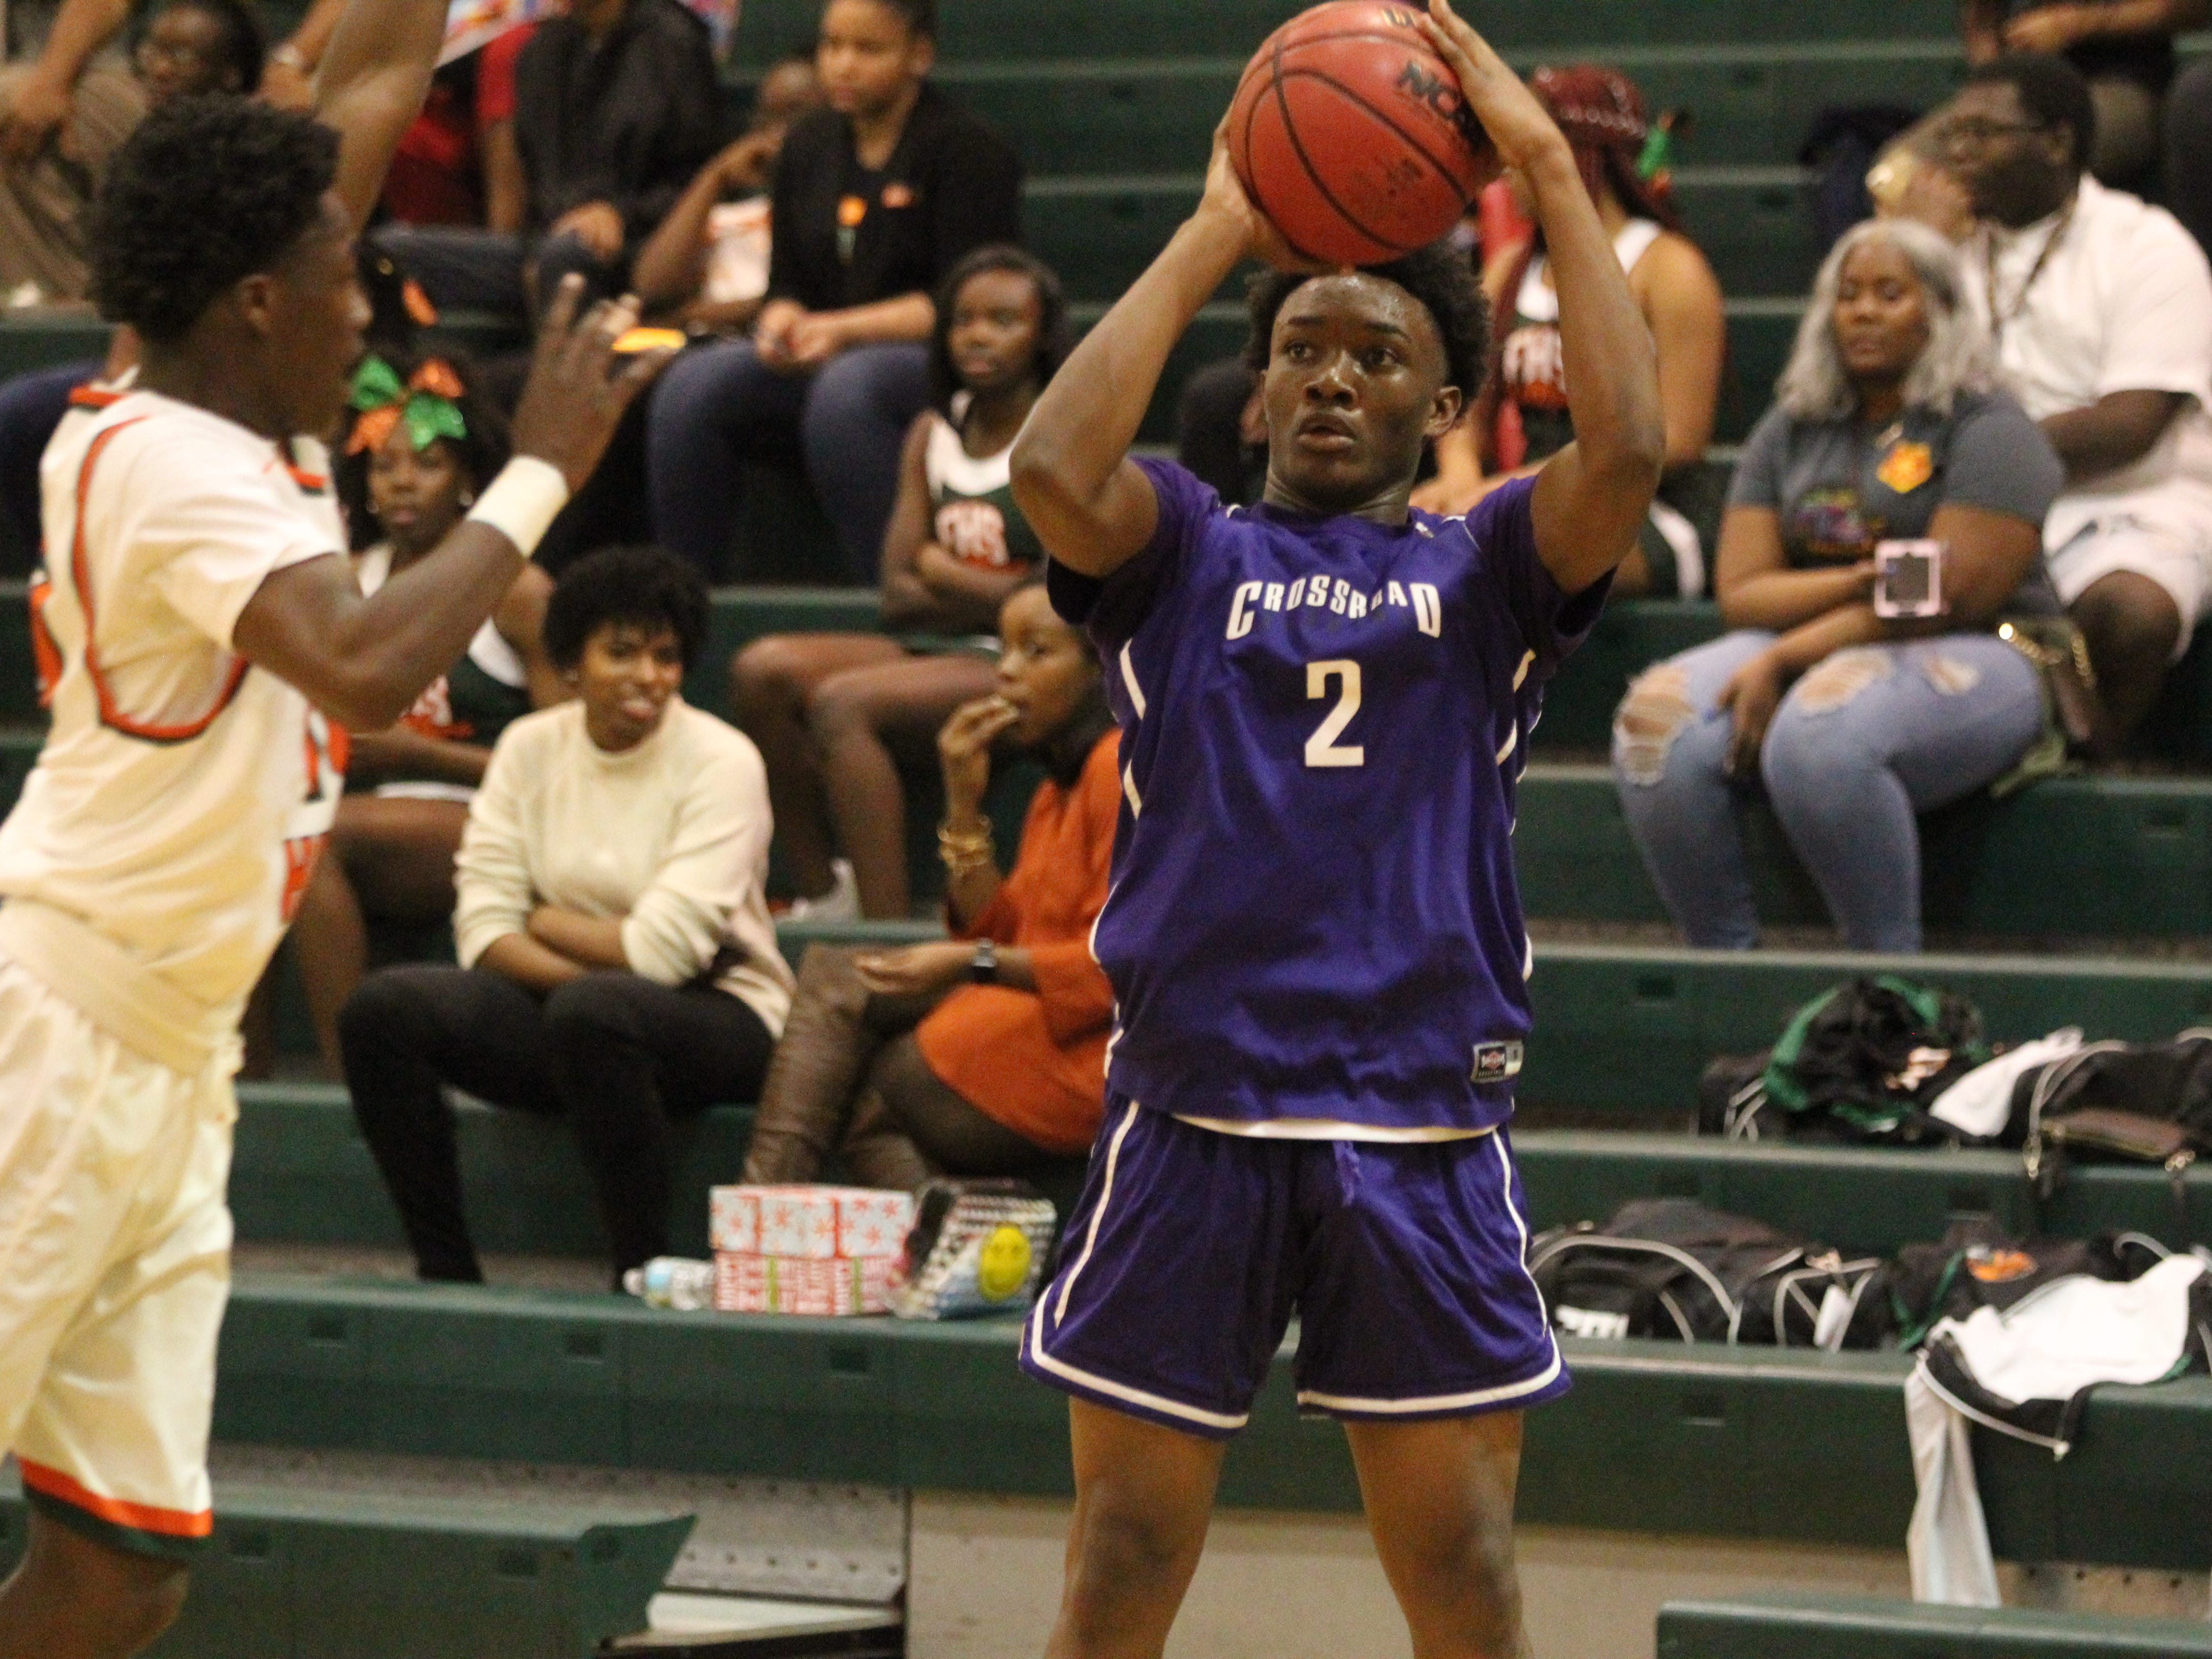 Jeremiah Outley shoots a 3-pointer as Crossroad Academy's boys basketball team plays at FAMU DRS on Jan. 7, 2019.